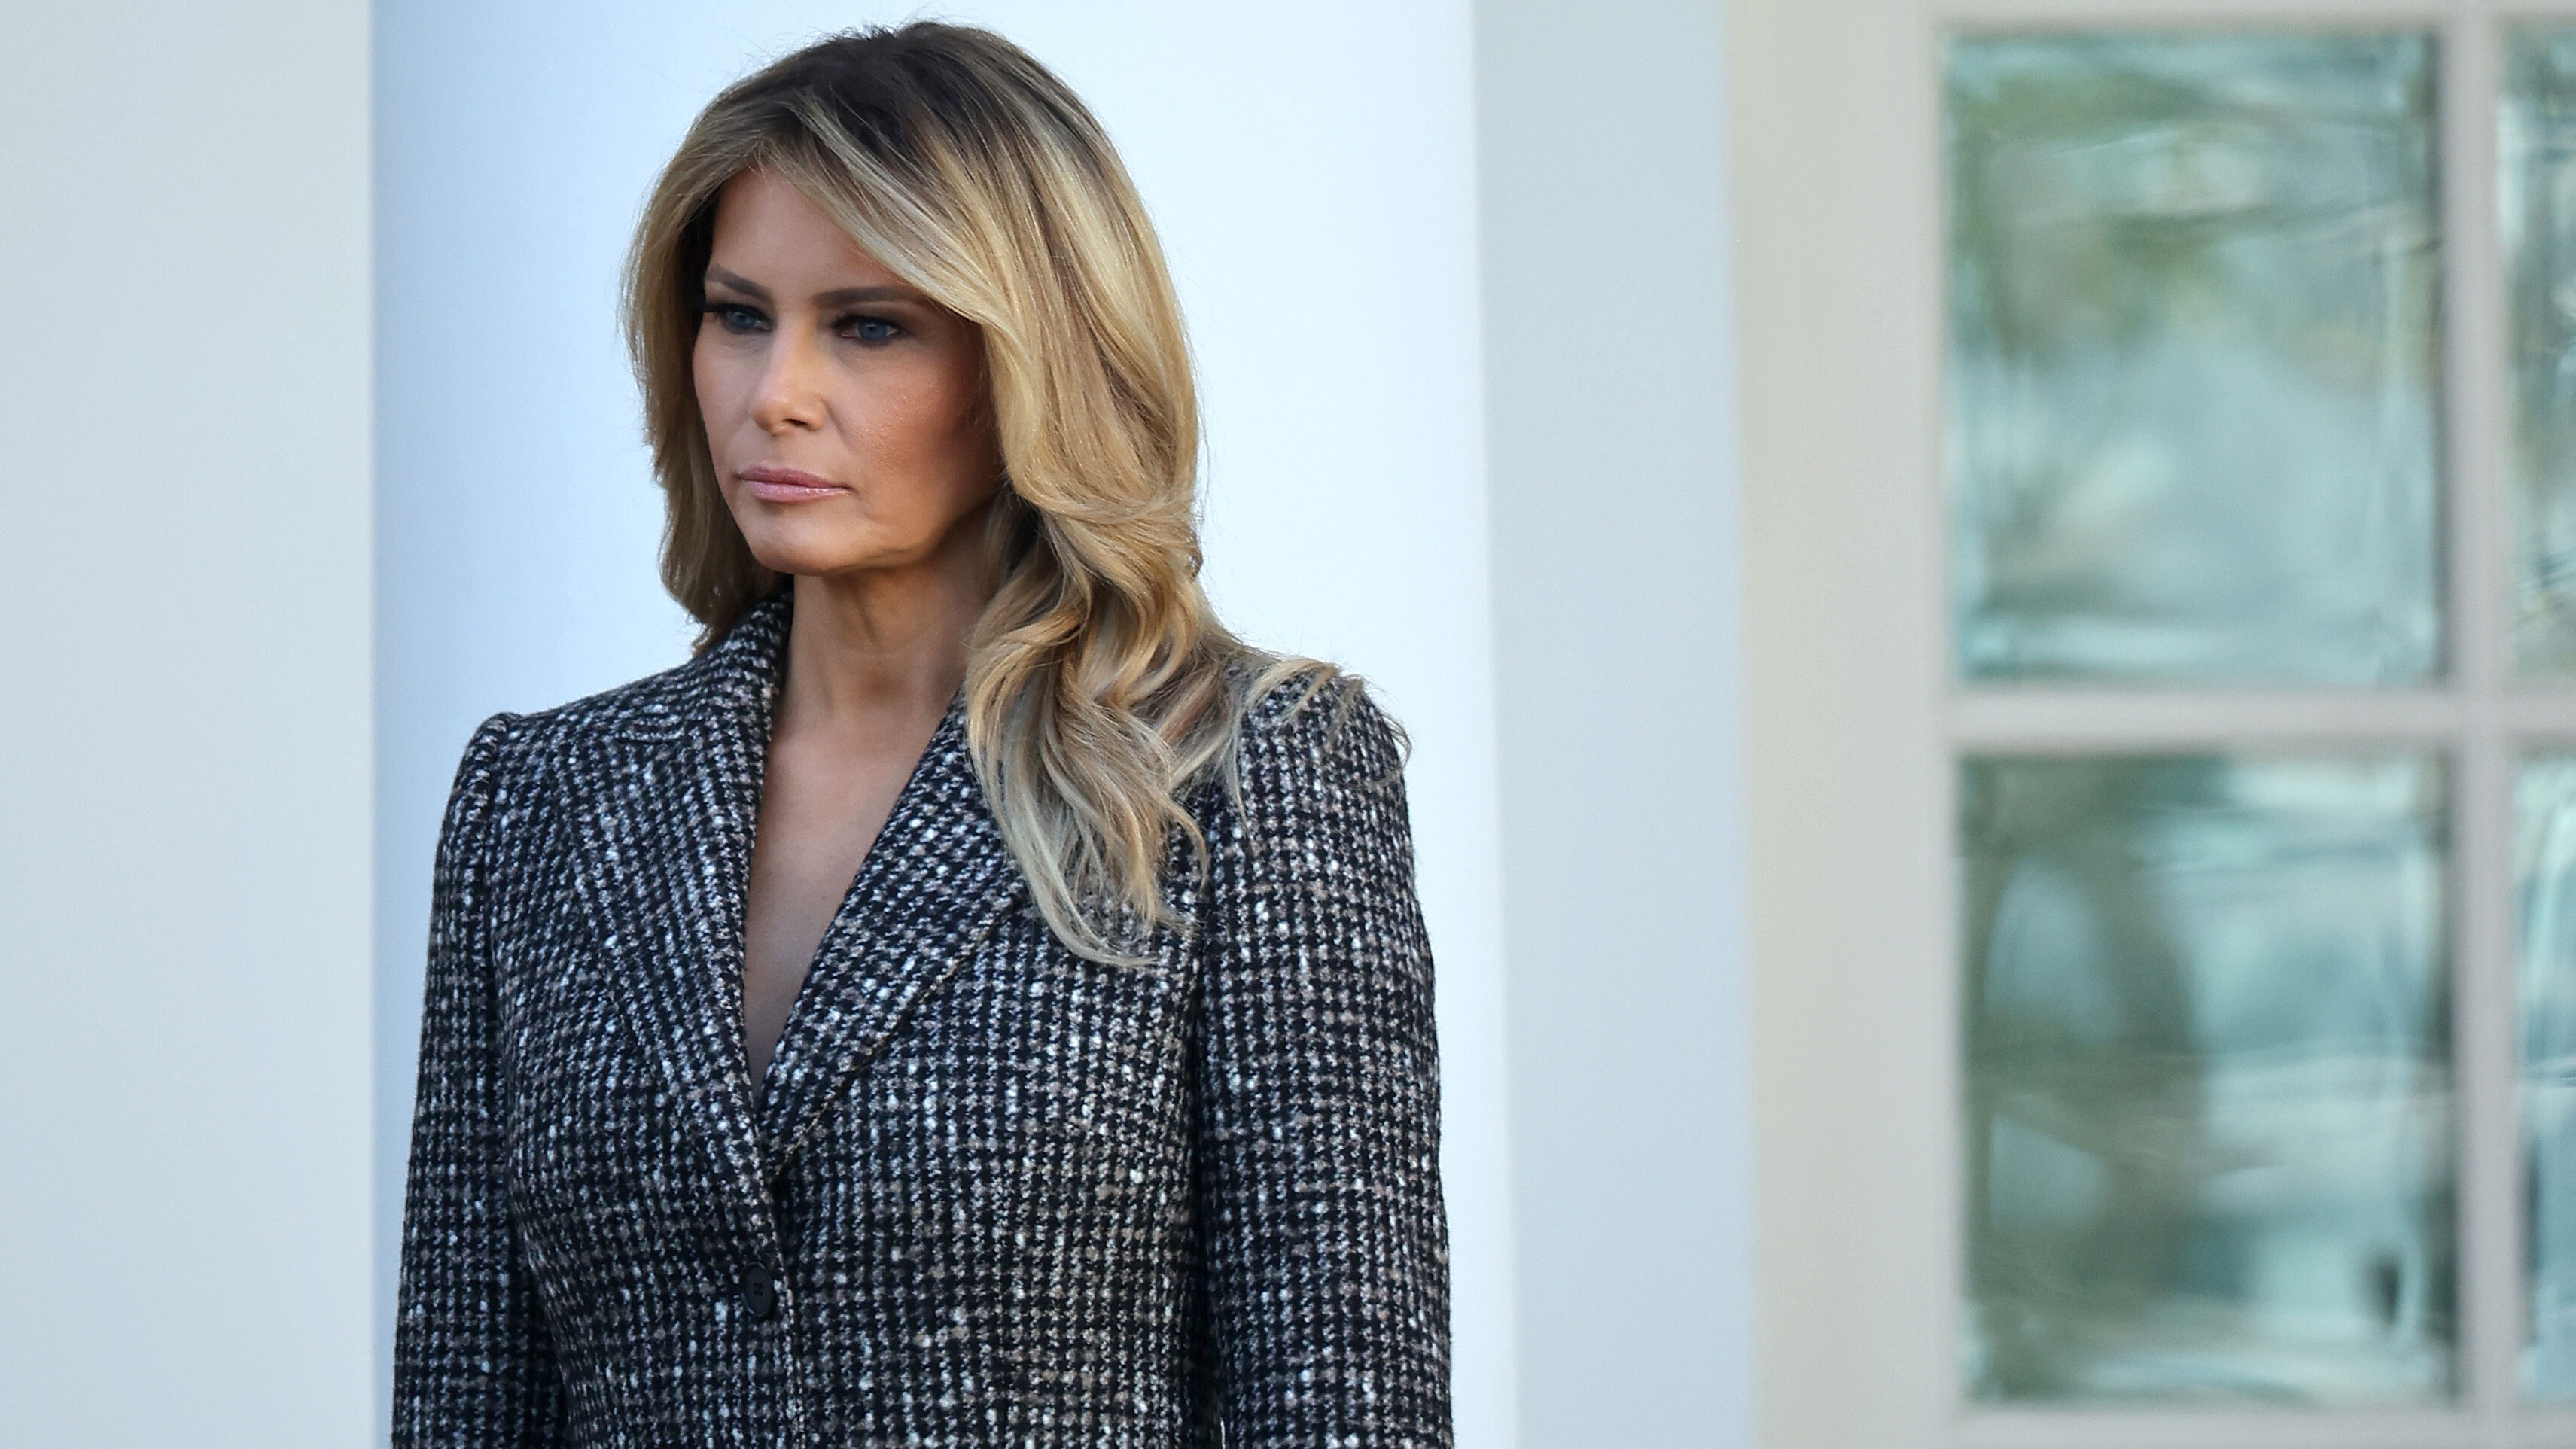 Melania Trump said 'no' when given chance to call for peace on January 6, sources say